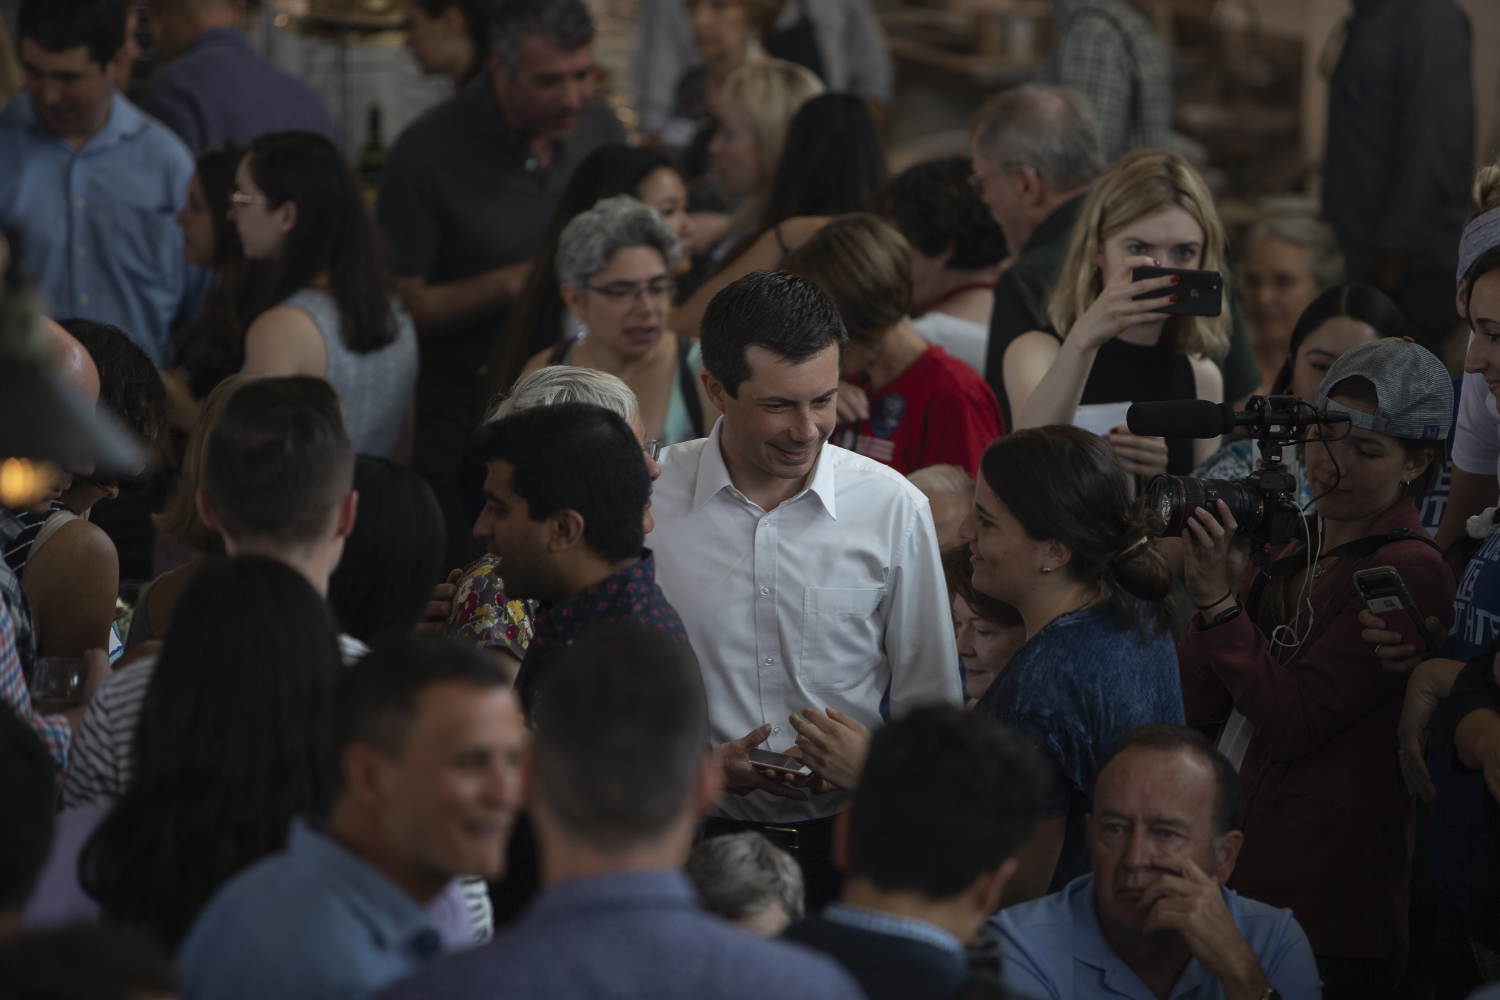 Mayor of South Bend, Indiana Pete Buttigieg talks with voters during a brunch fundraiser for Sen. Zach Wahls at the Walker Homestead on July 14, 2019.